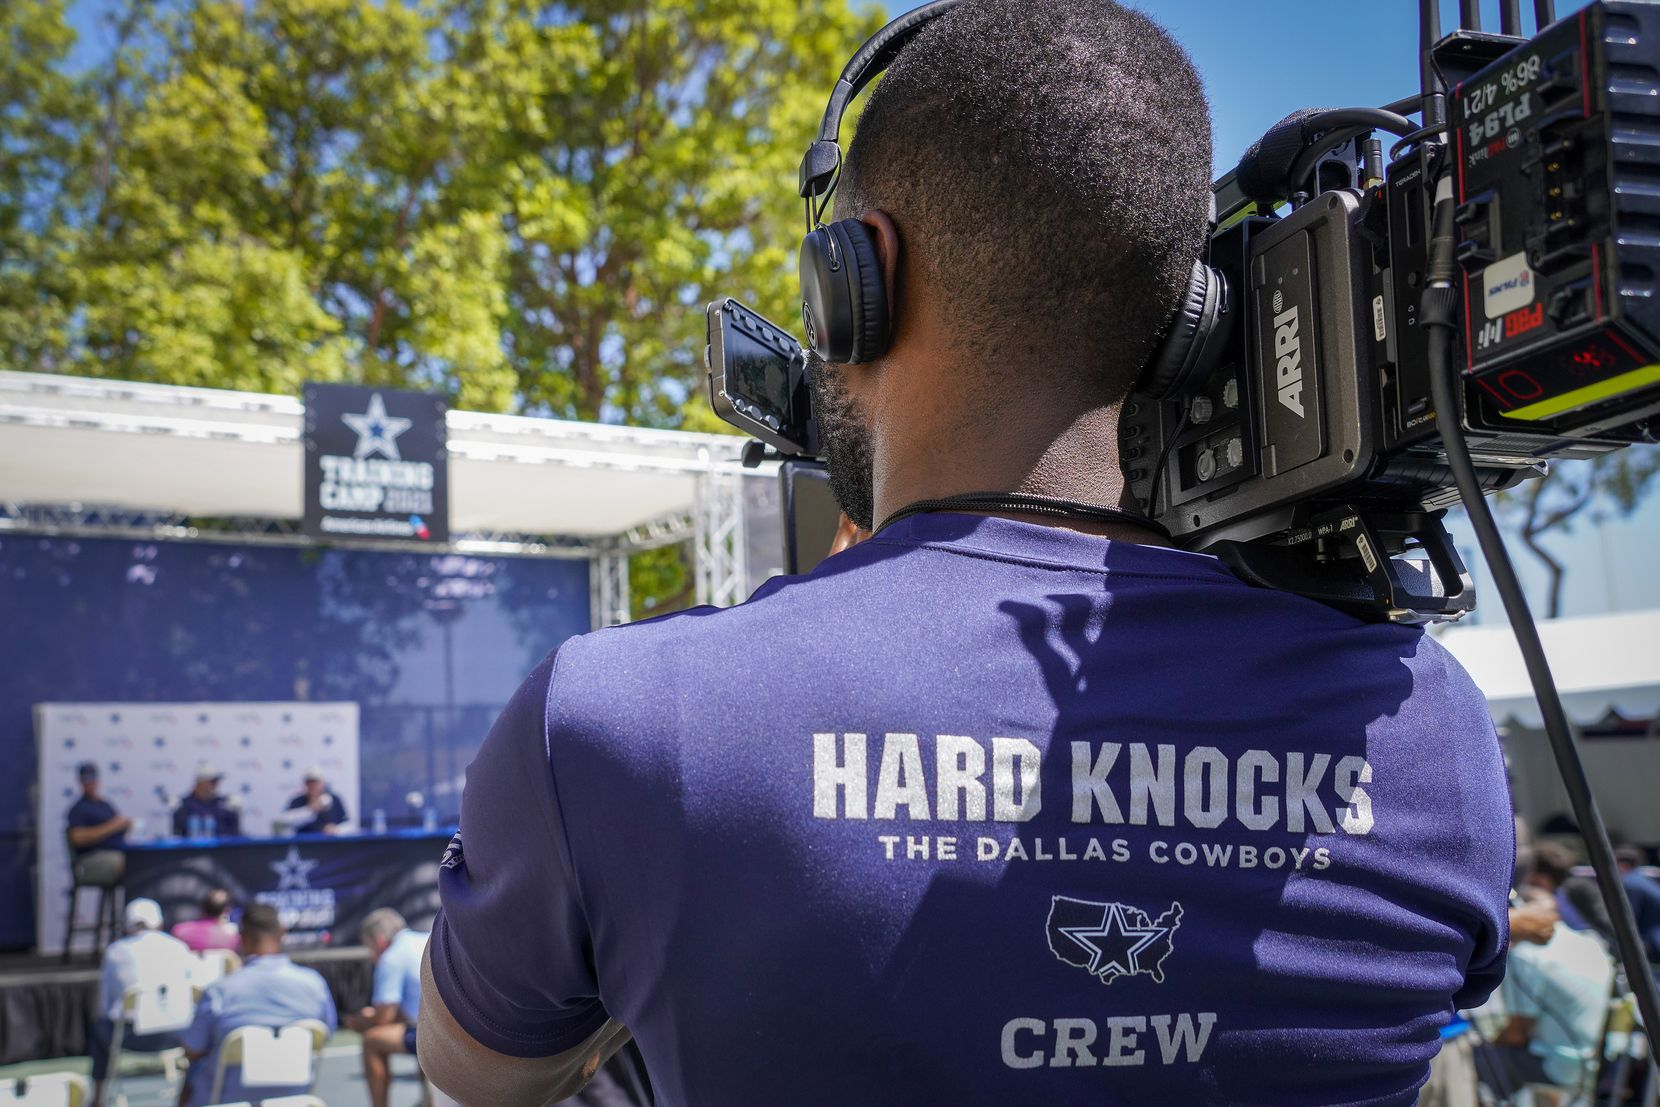 A HBO Hard Knocks crew records the opening news conference for the Dallas Cowboys training camp on Wednesday, July 21, 2021, in Oxnard, Calif.